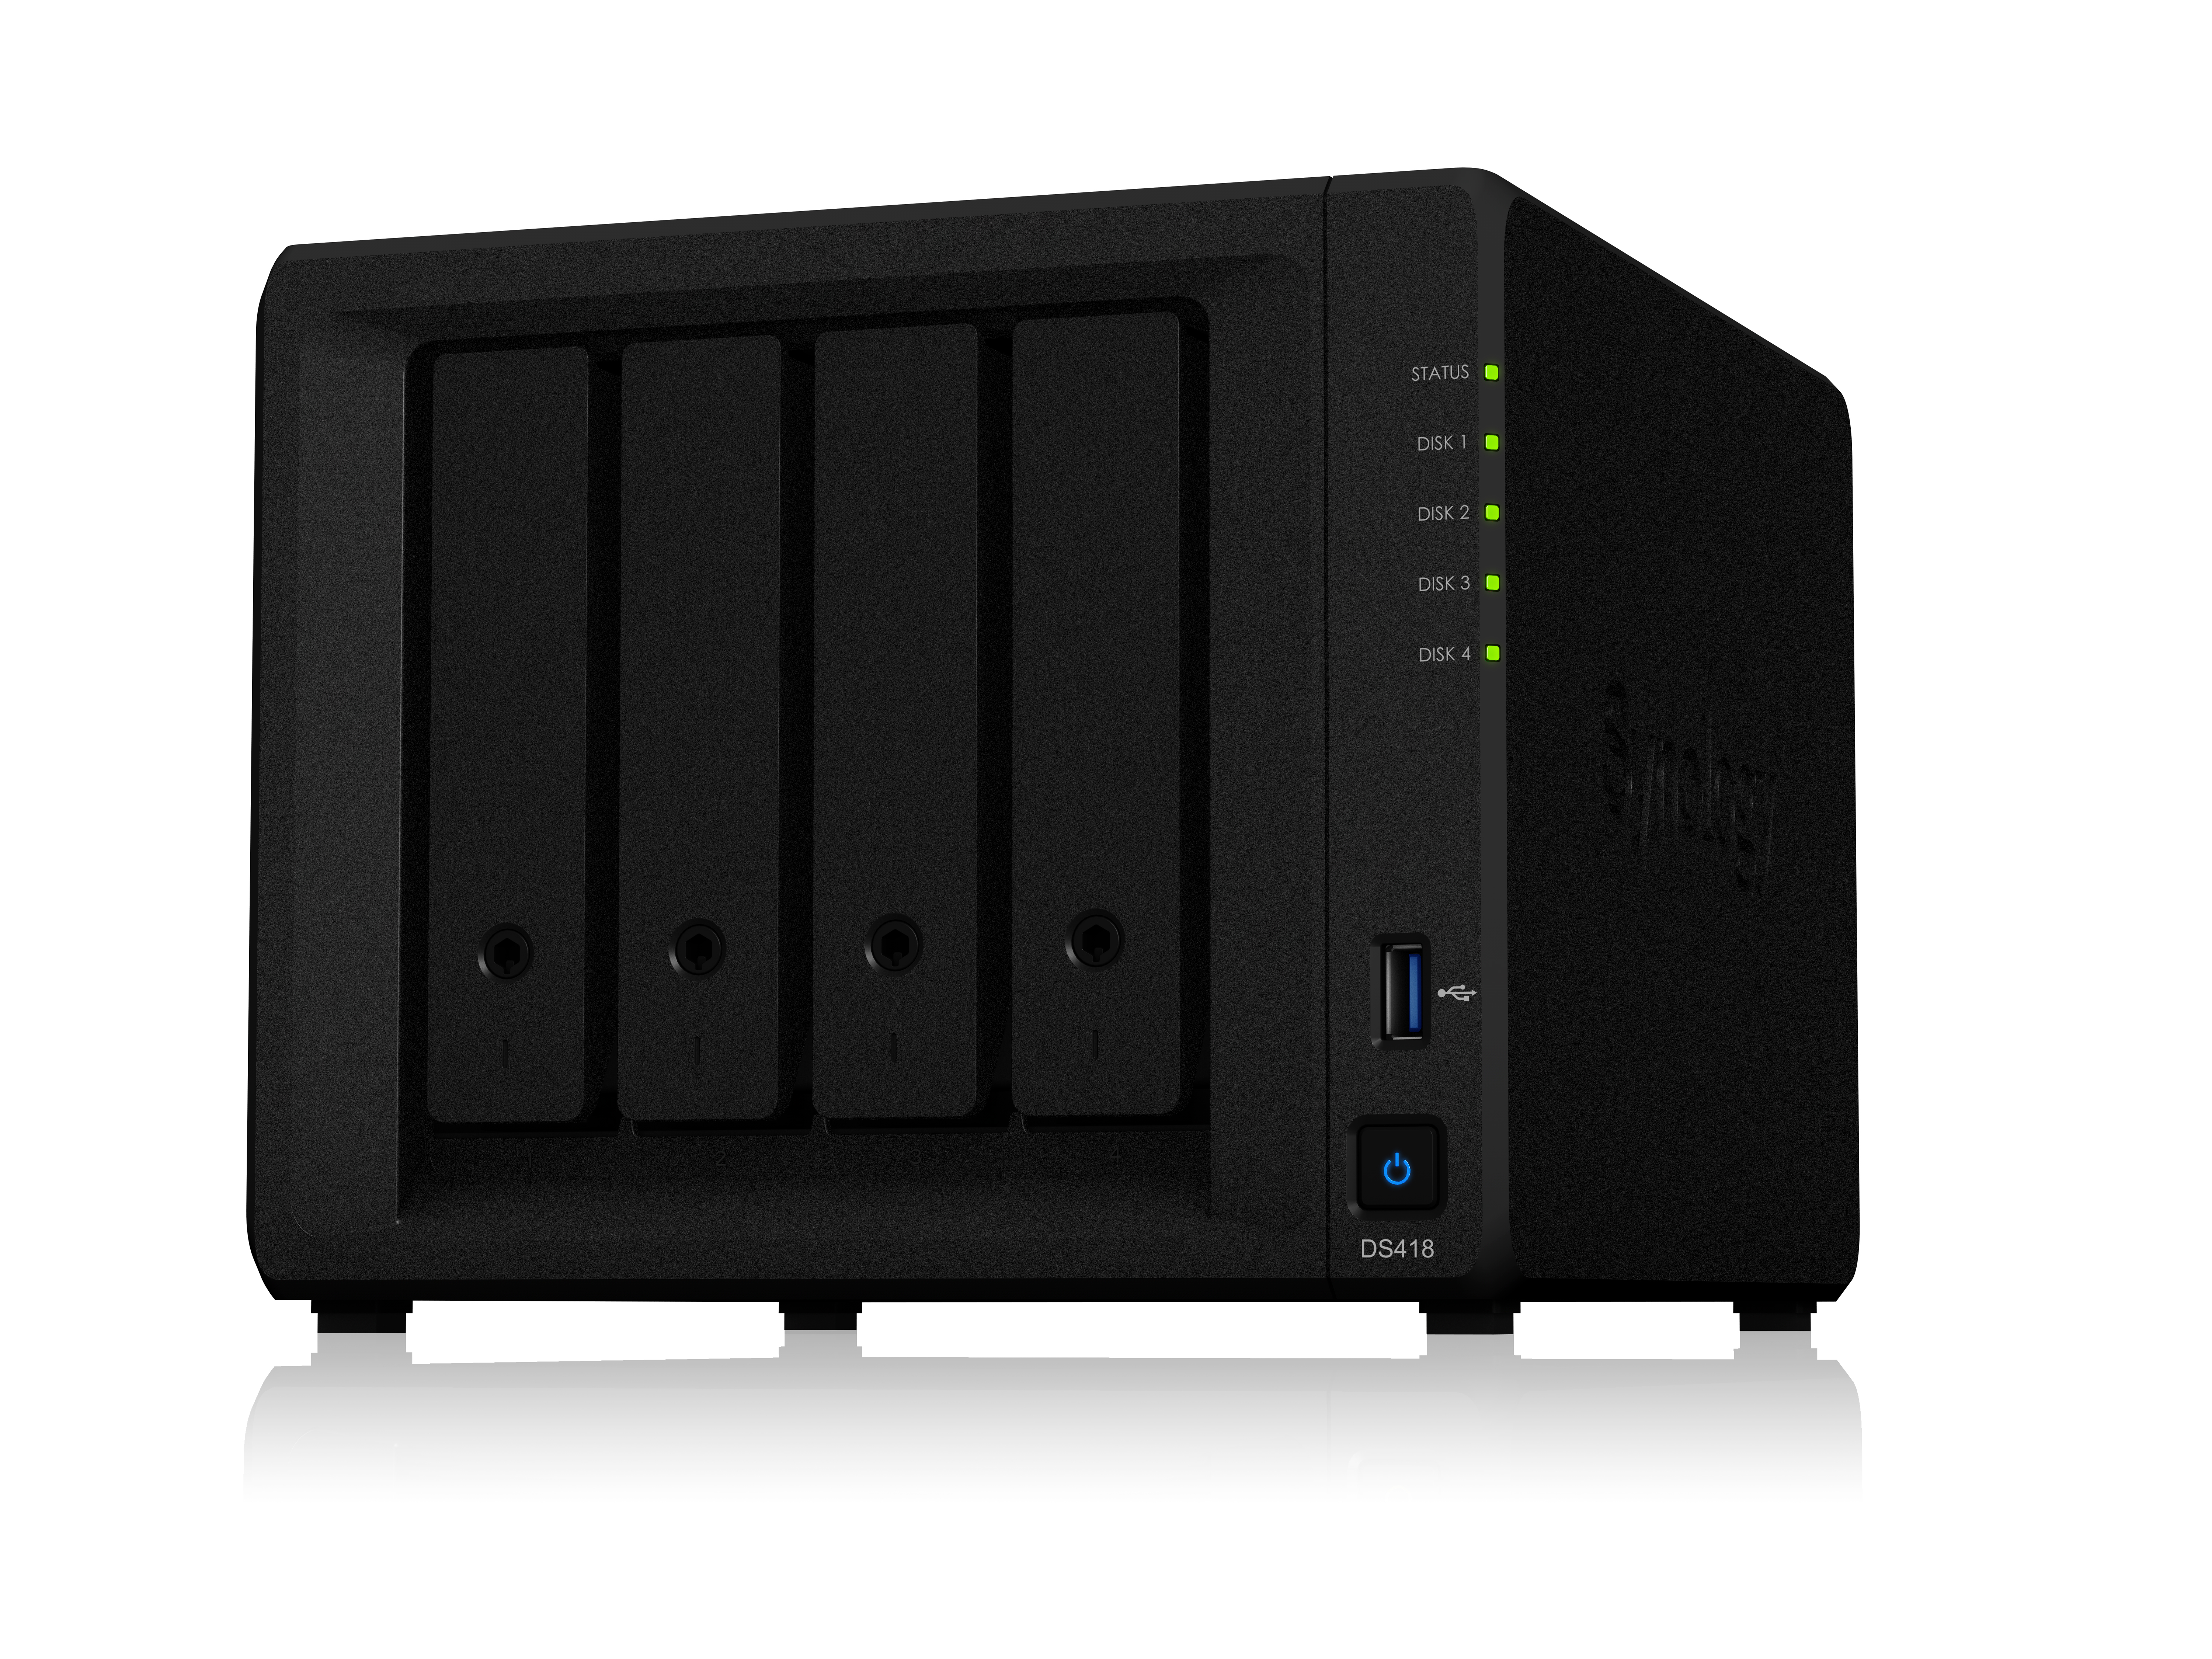 SYNOLOGY DS418/32TB-IW DS418 NAS MINI TOWER ETHERNET LAN BLACK